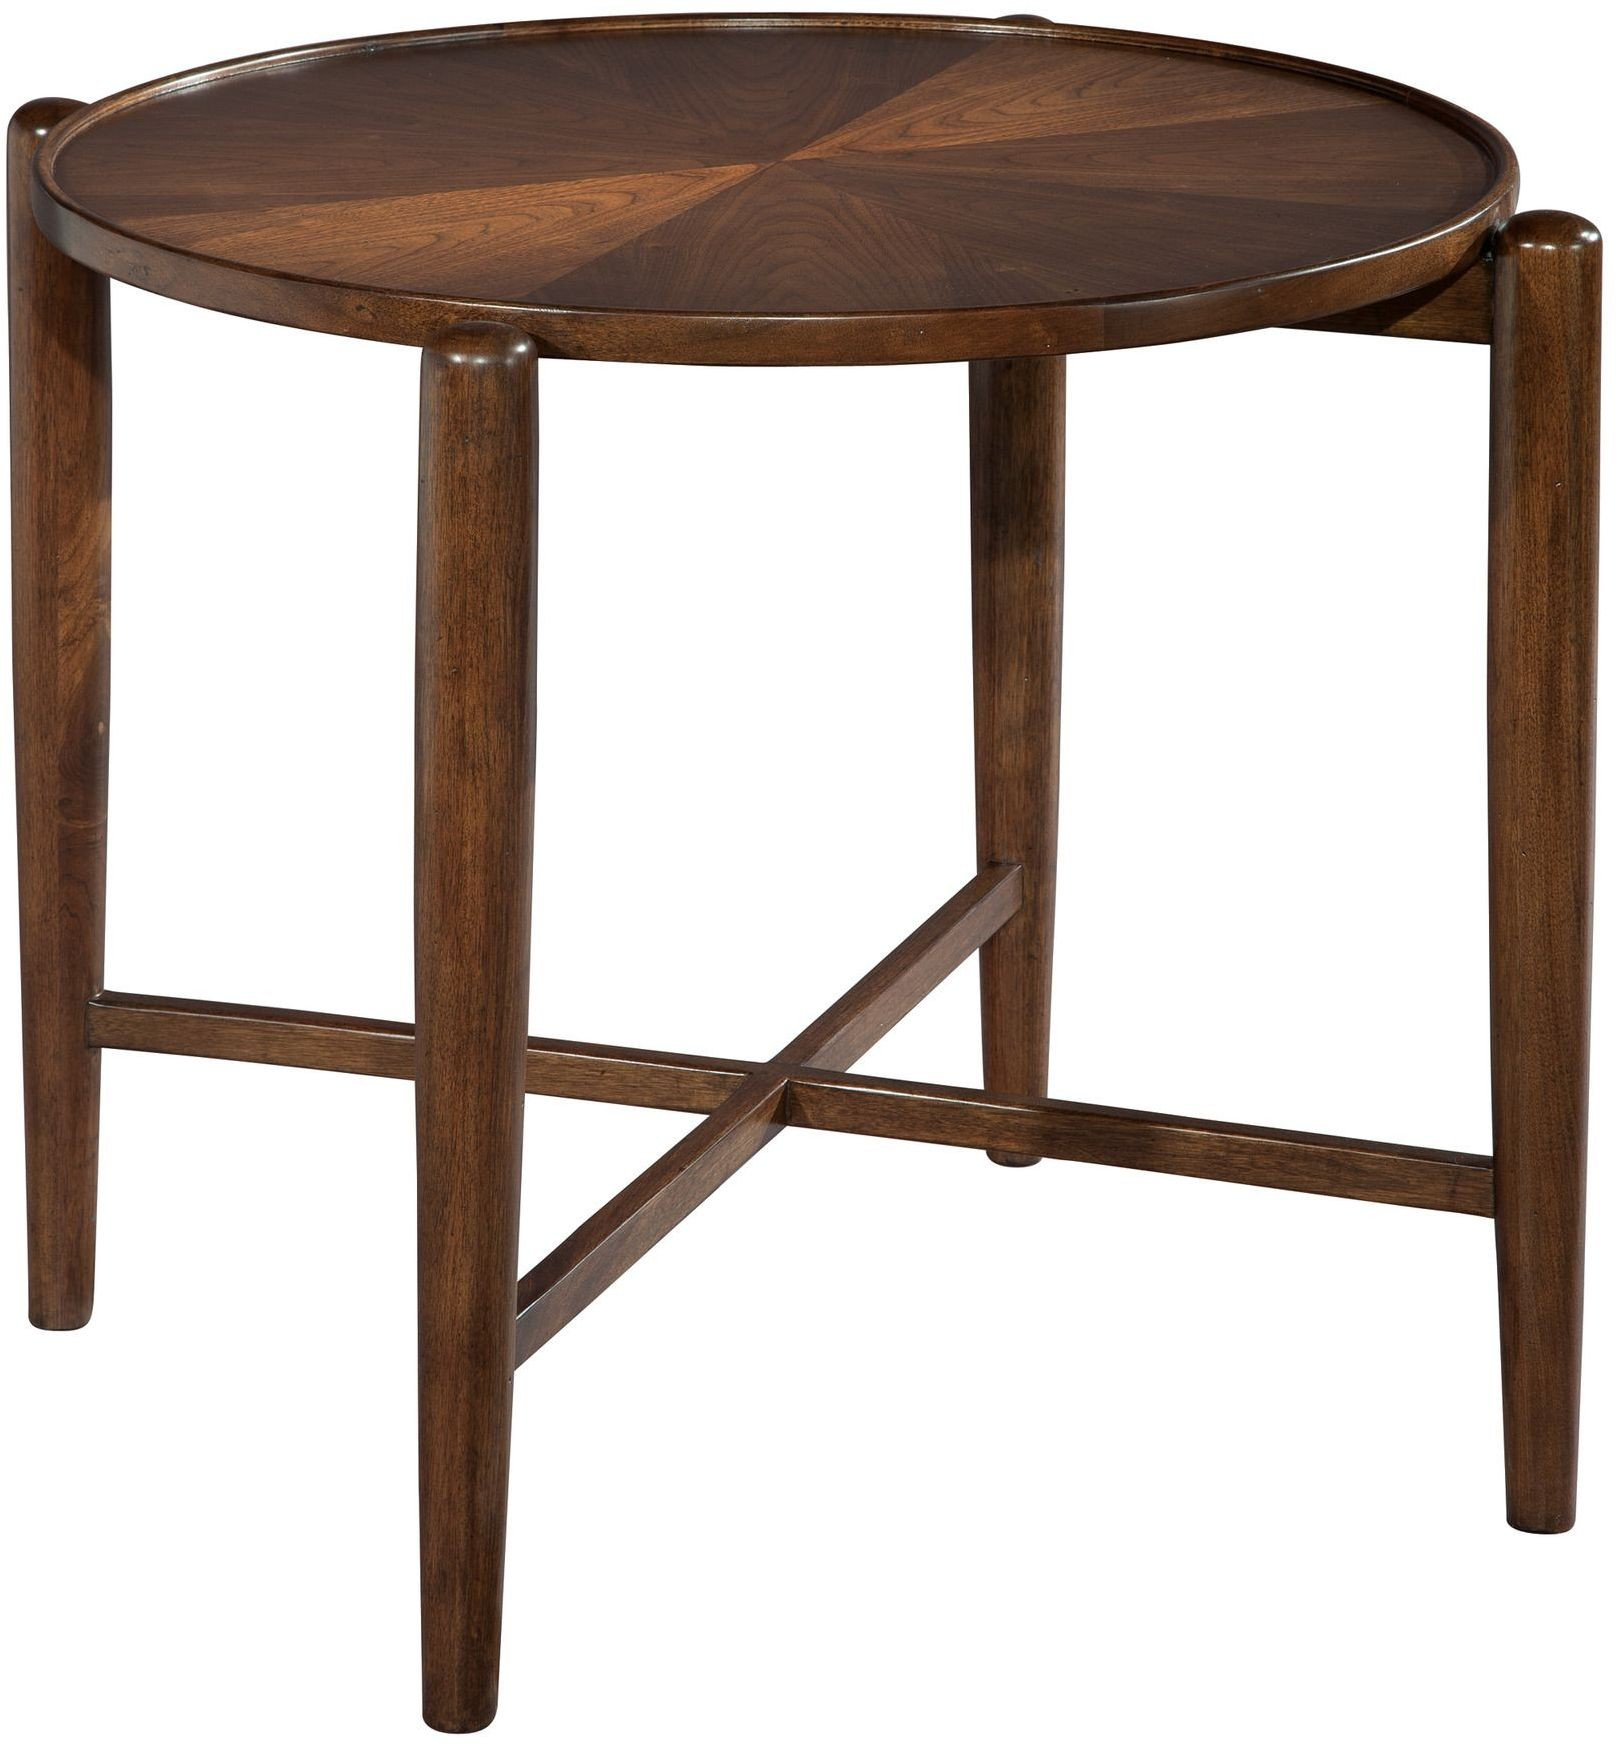 Mid century walnut round side table from hekman furniture for Walnut side table